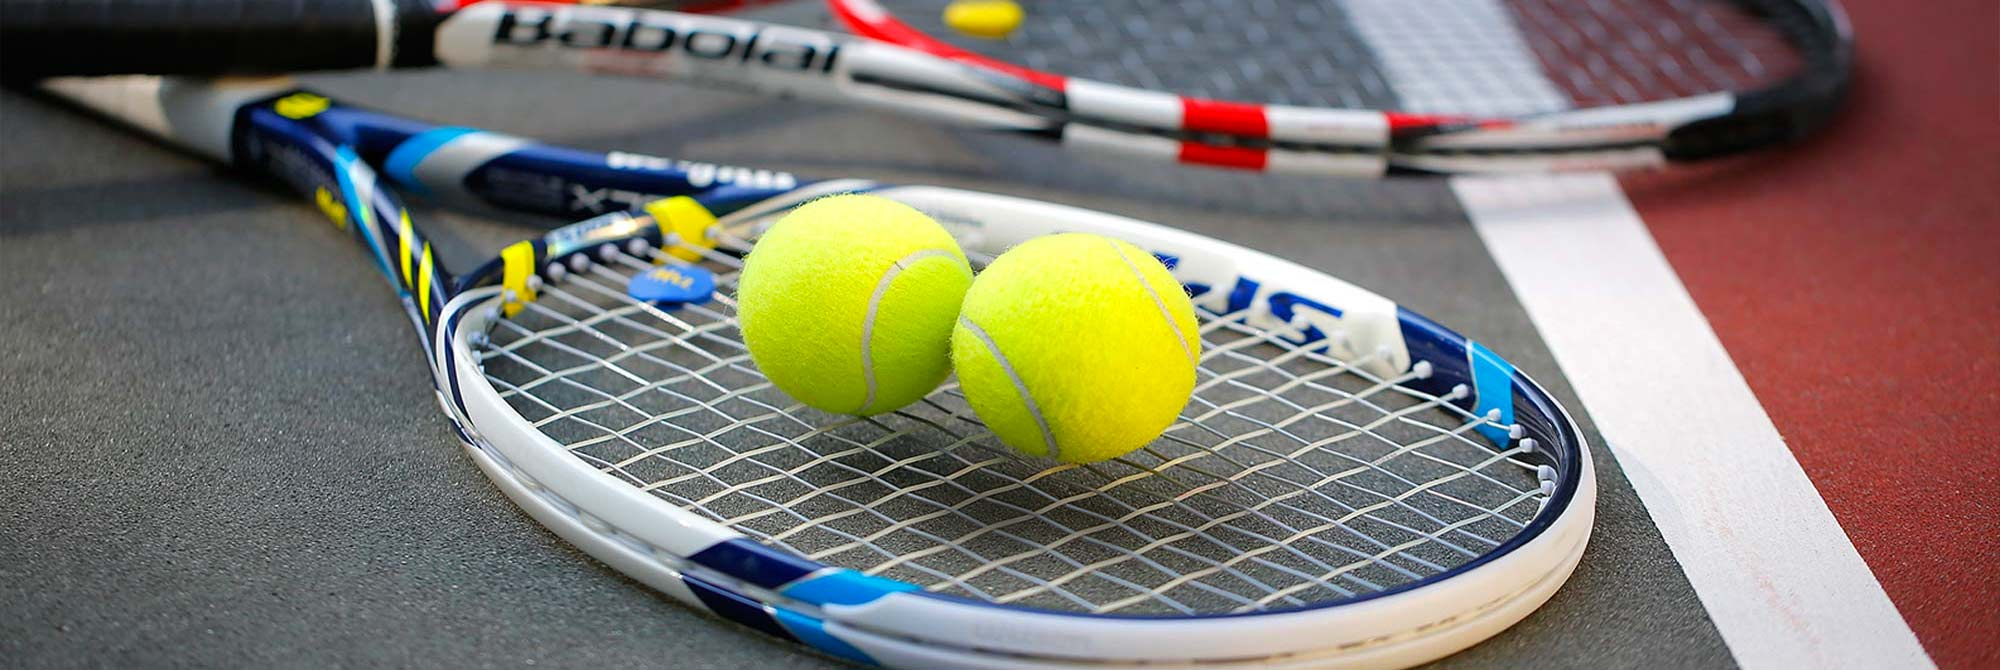 Two tennis balls resting on a raquet